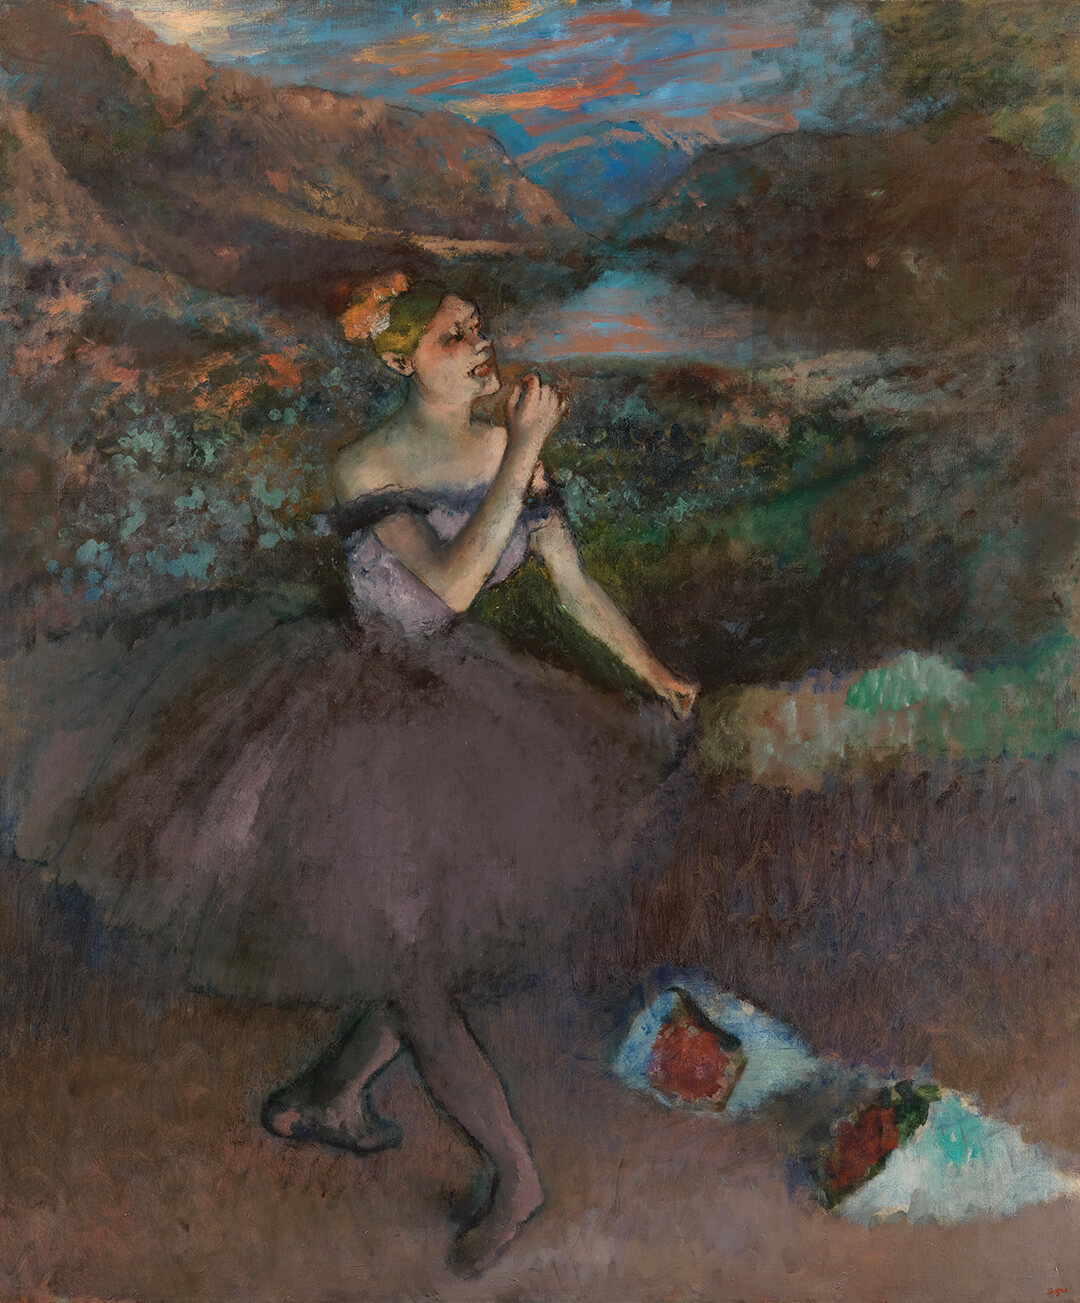 a painting, dances with bouquets by edgar degas